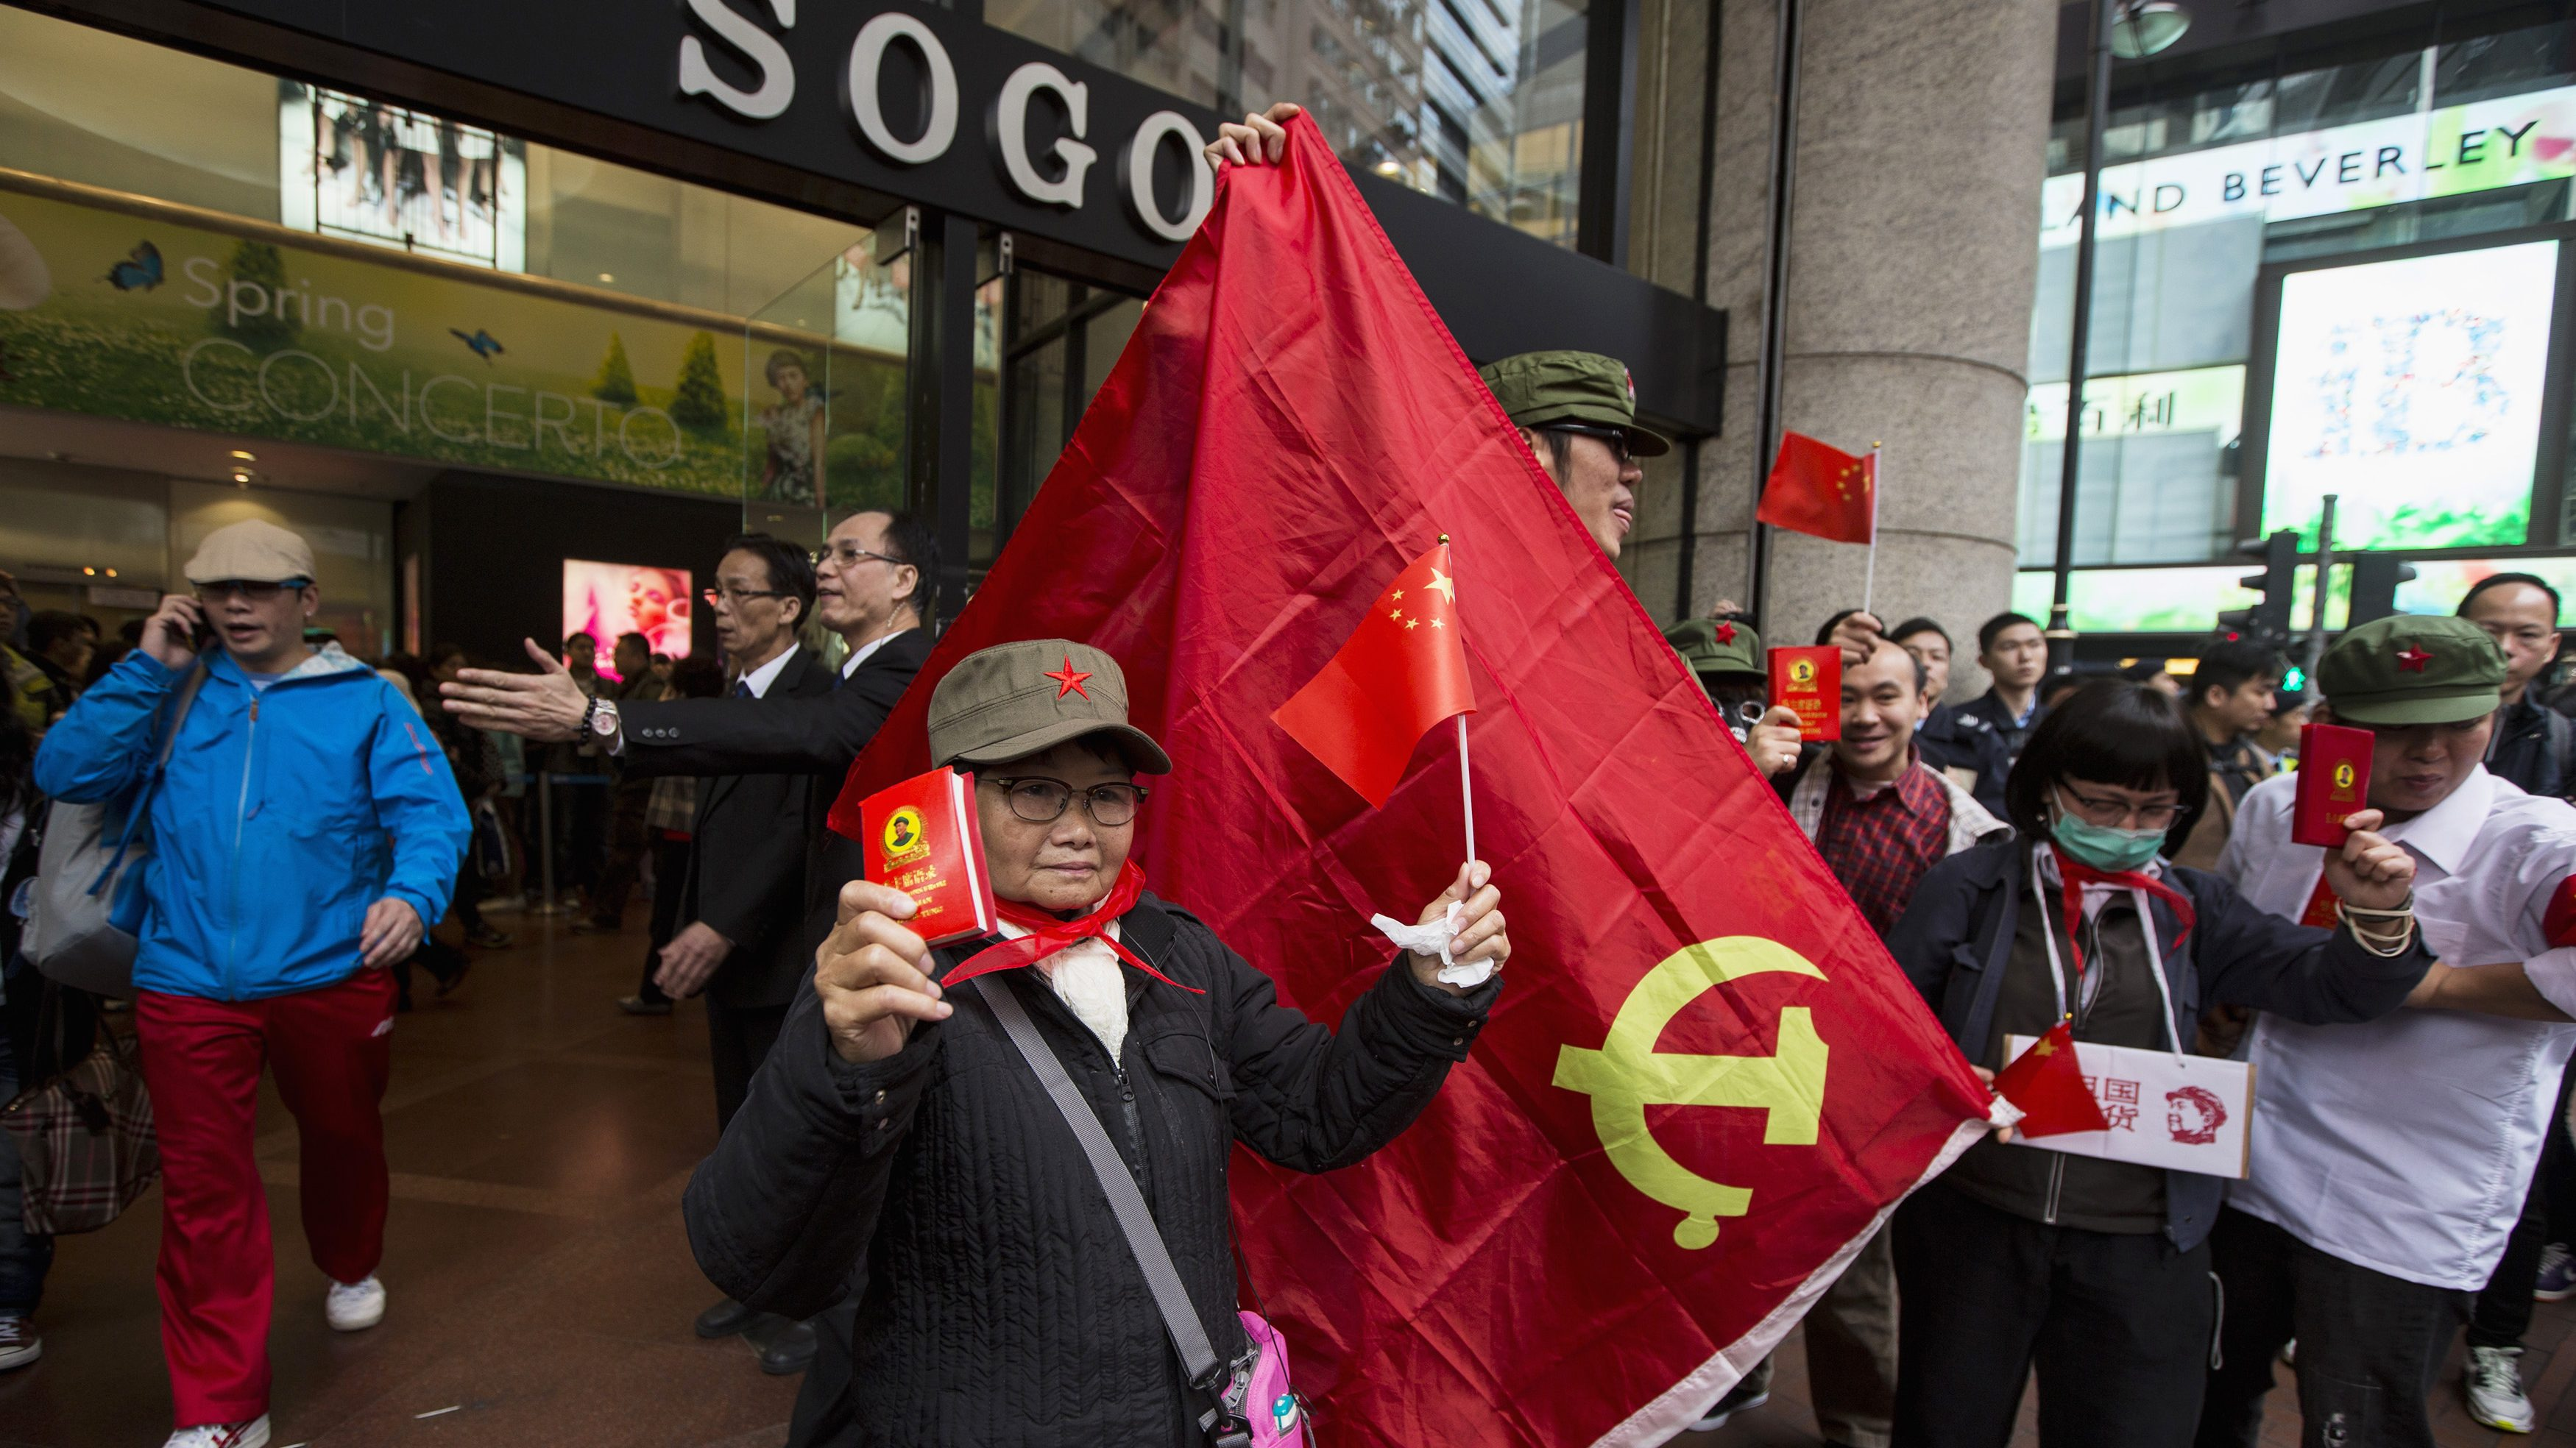 """Protester hold a """"Quotations from Chairman Mao Tse-tung"""" book, commonly known as the """"Little Red Book"""", and Communist Party of China flag during an anti-mainland tourist rally outside a shopping mall in Hong Kong's famous Causeway Bay shopping district March 16, 2014. Hundreds of protesters joined a rally organized by an anti-mainland group in Causeway Bay, mocking and dissuading mainland Chinese shoppers from buying imported daily essentials in Hong Kong. The protesters claim that prices of imported daily essentials have gone up and supply is limited, according to local media. REUTERS/Tyrone Siu (CHINA - Tags: POLITICS BUSINESS CIVIL UNREST TRAVEL) - RTR3H9RF"""